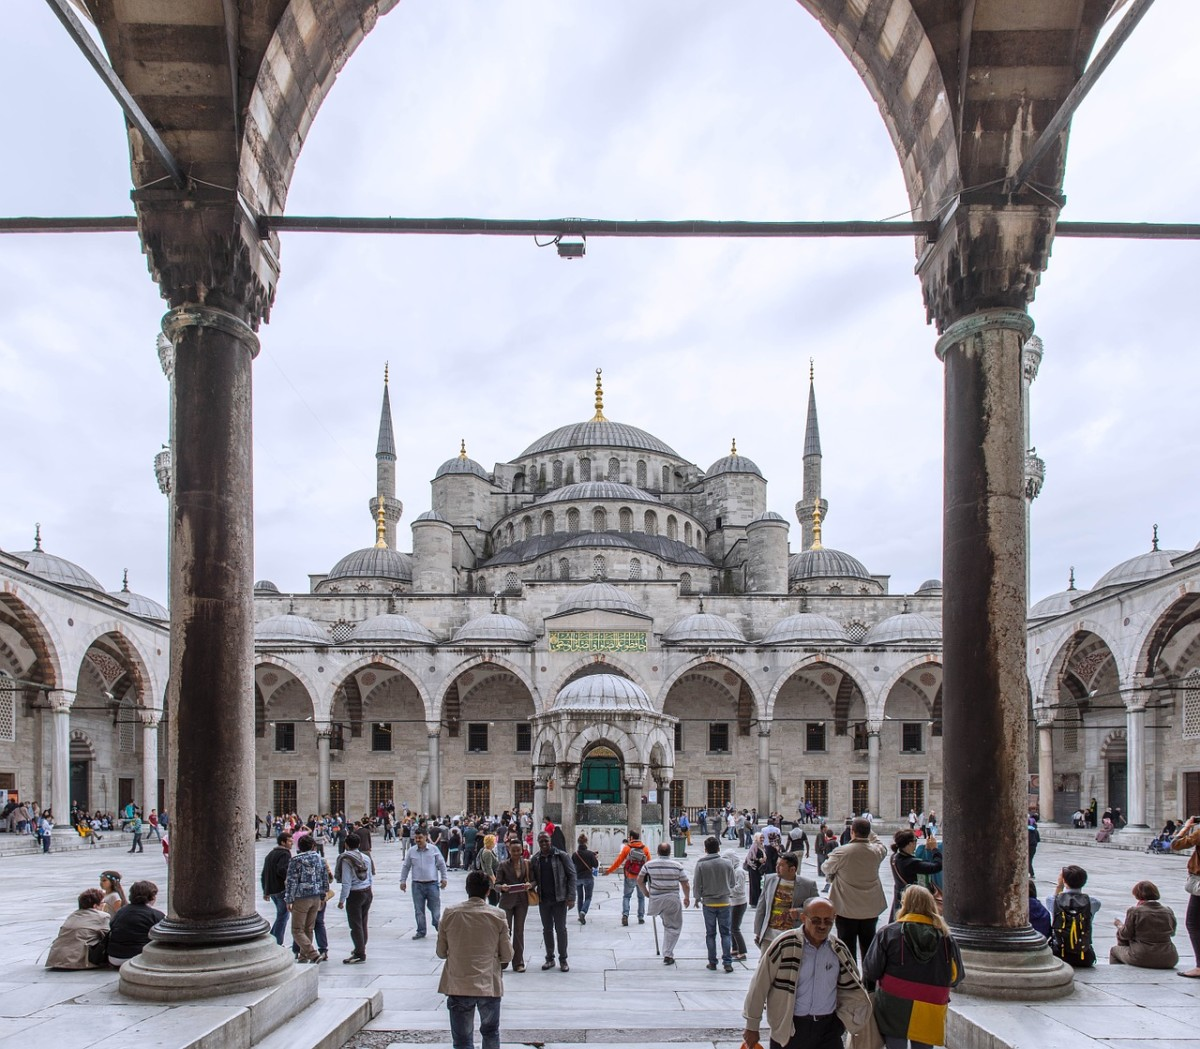 One of the many buildings with traditional architecture in Turkey